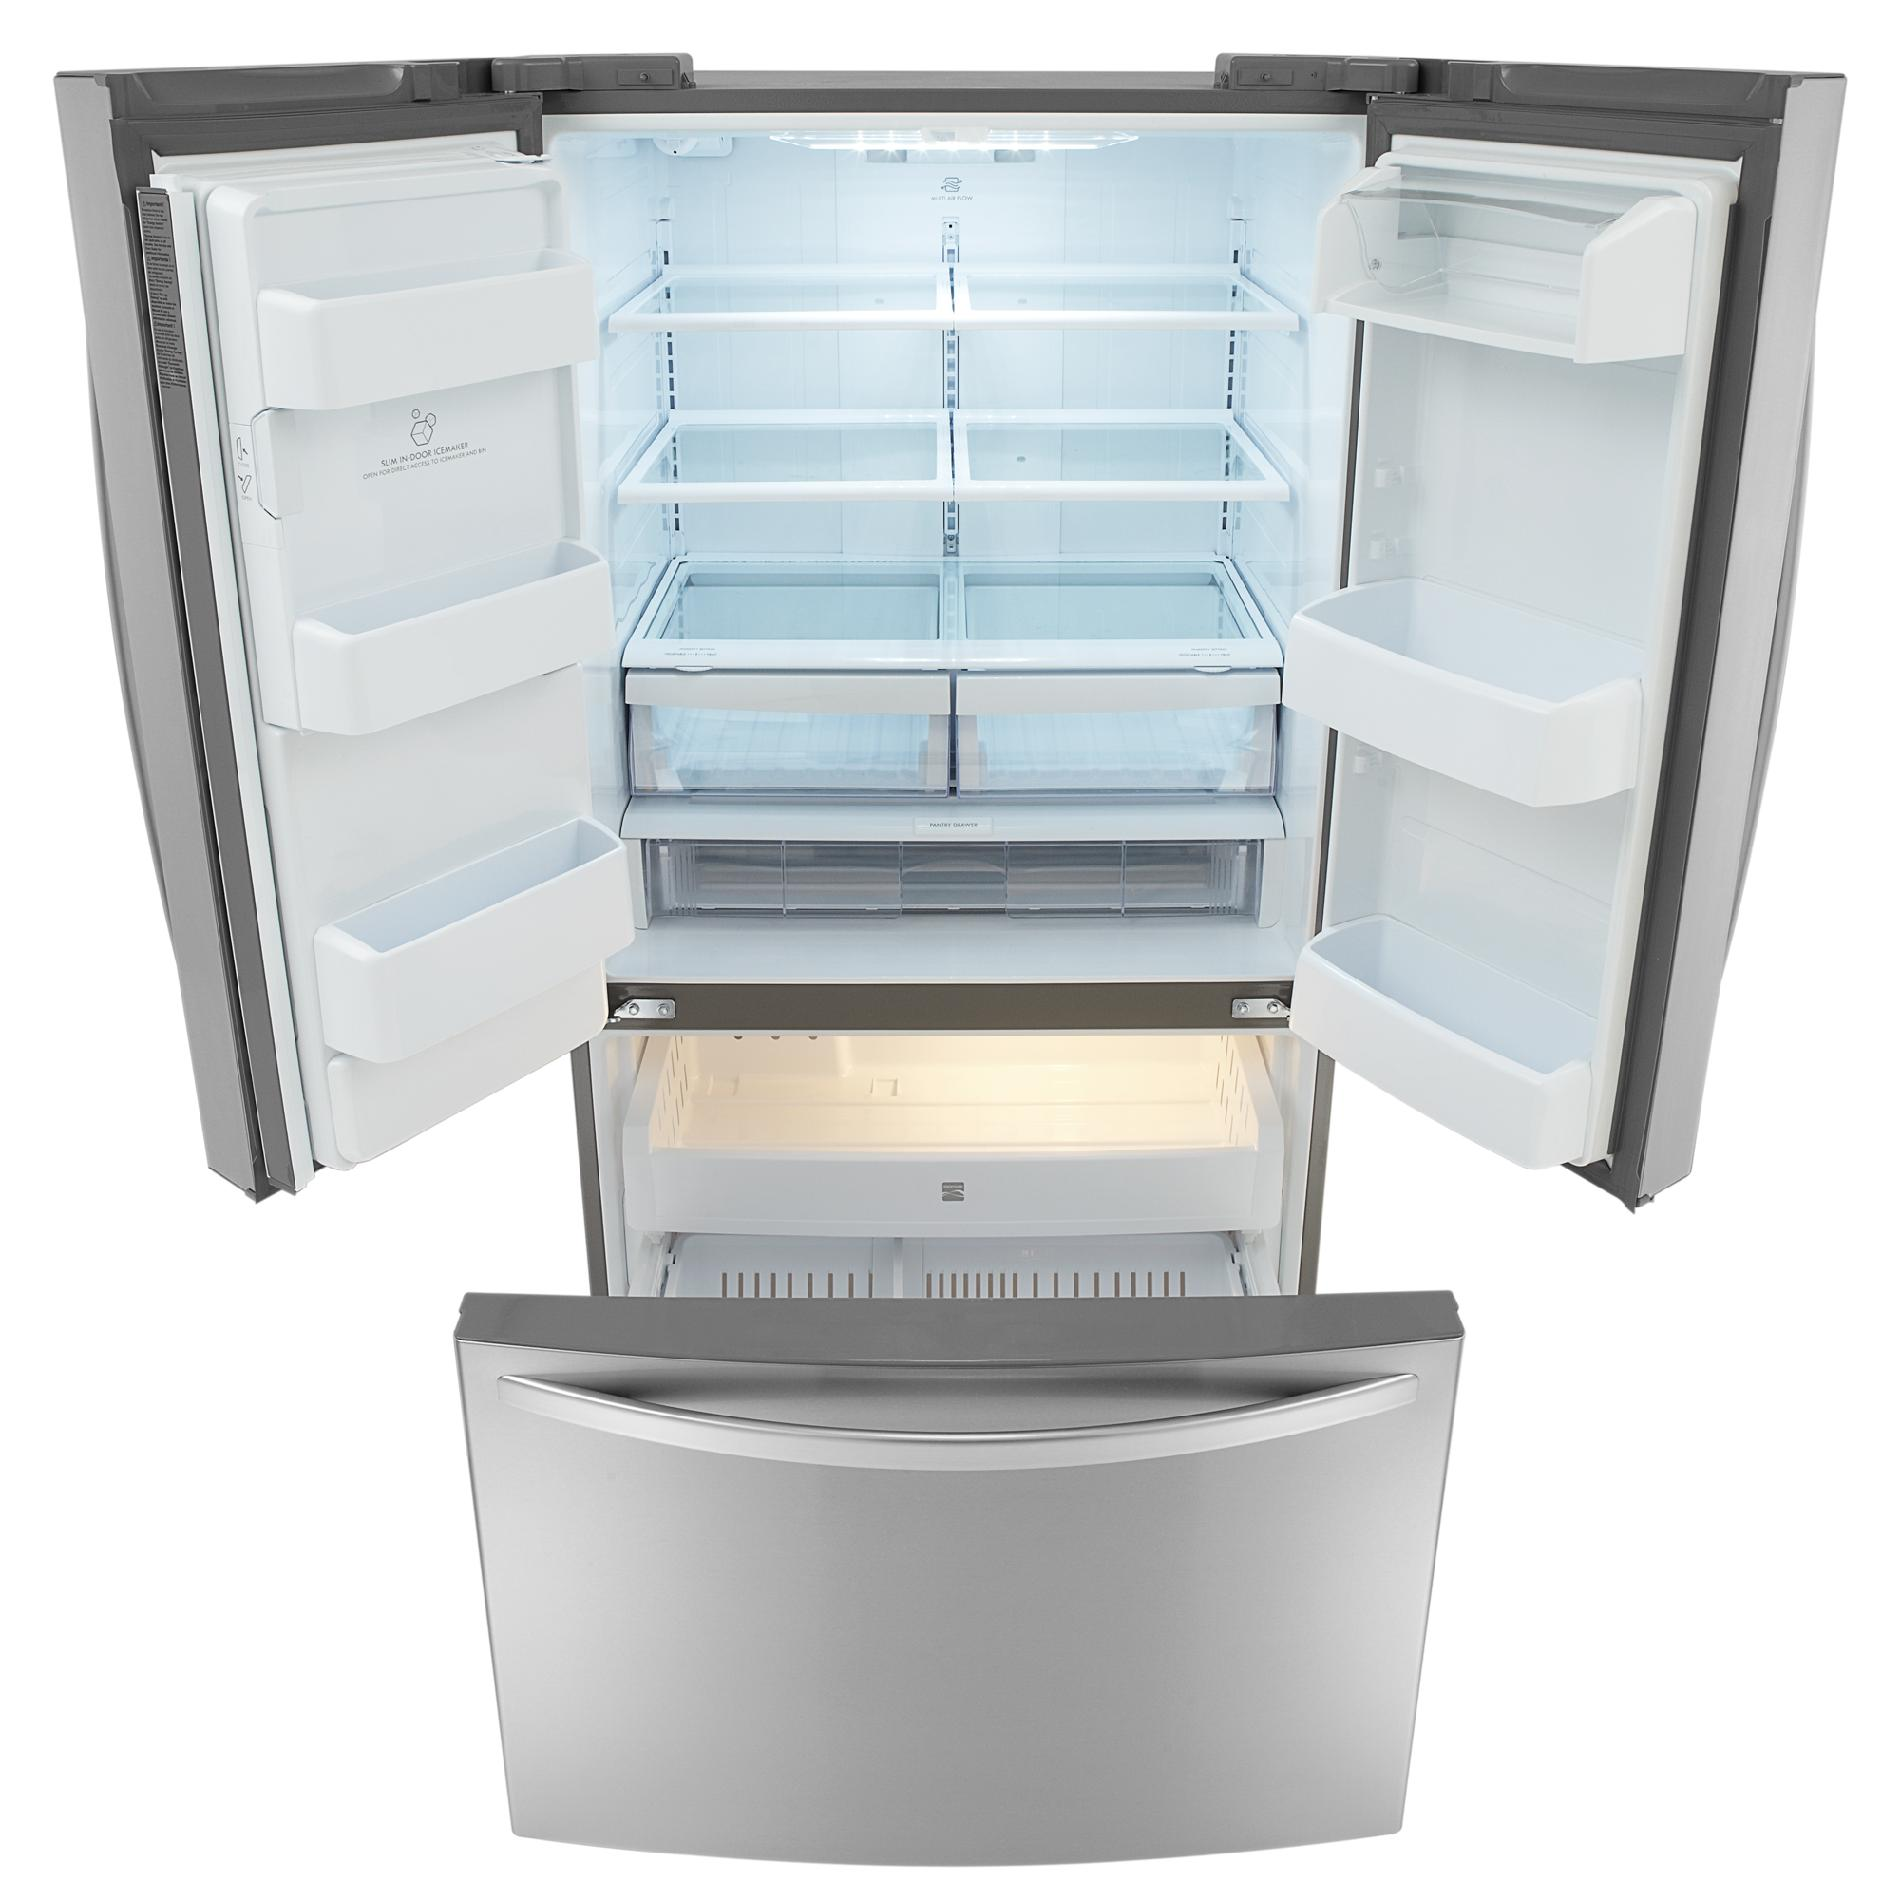 Kenmore 25 cu. ft. French Door Bottom-Freezer Refrigerator - Stainless Steel